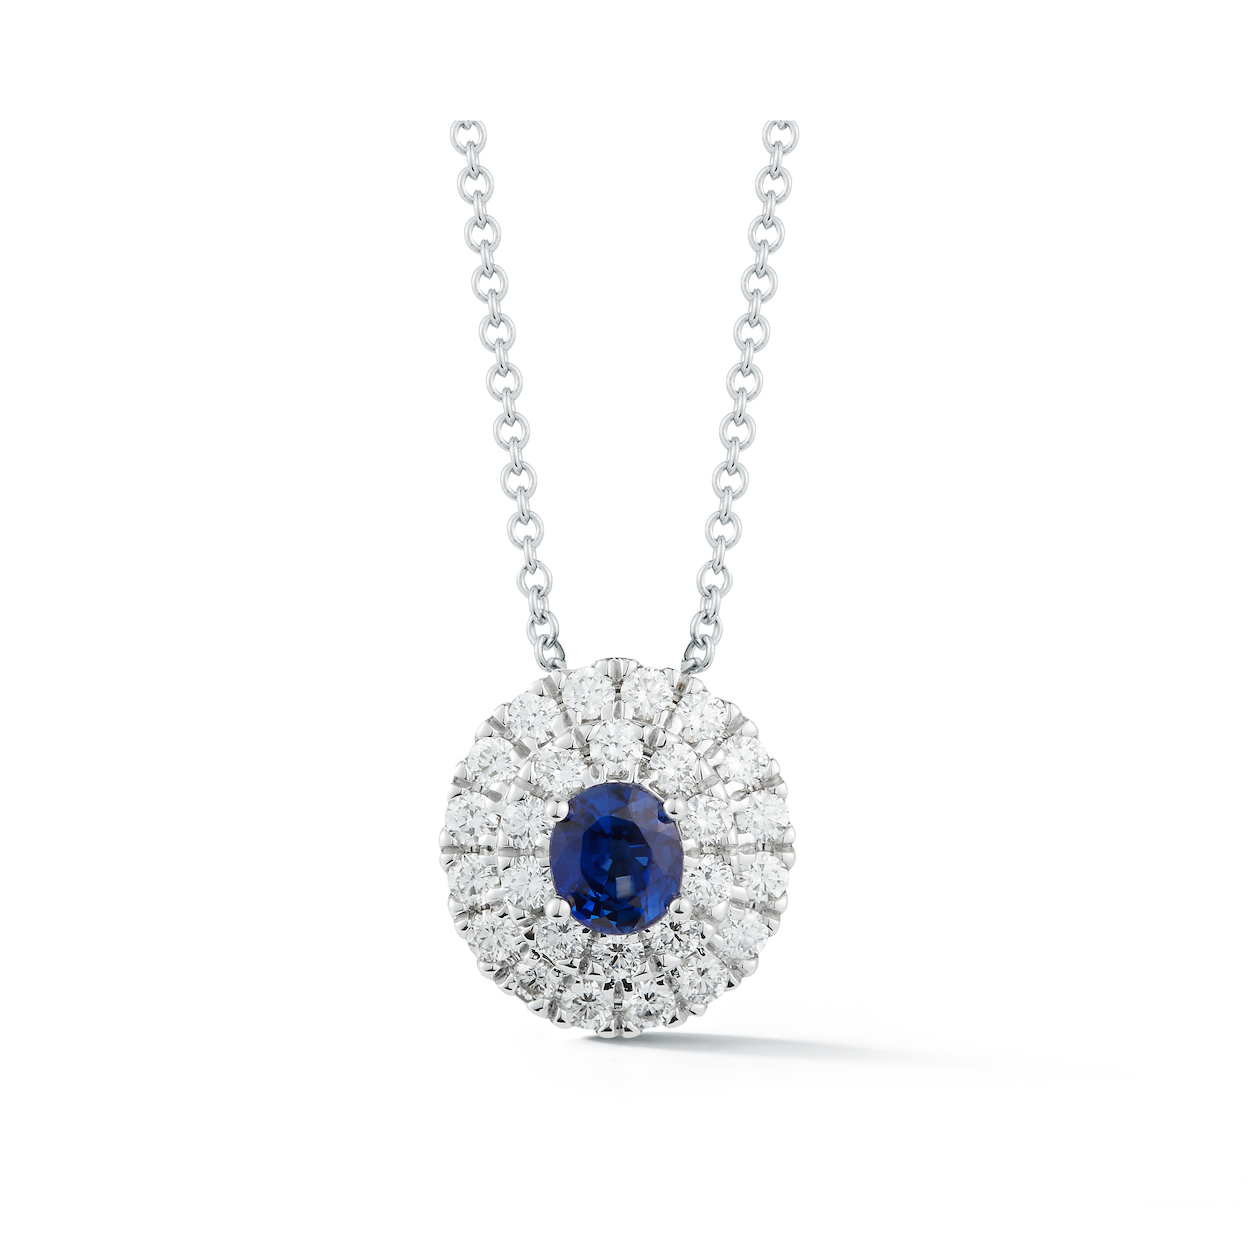 0 60ct Oval Sapphire Halo Pendant